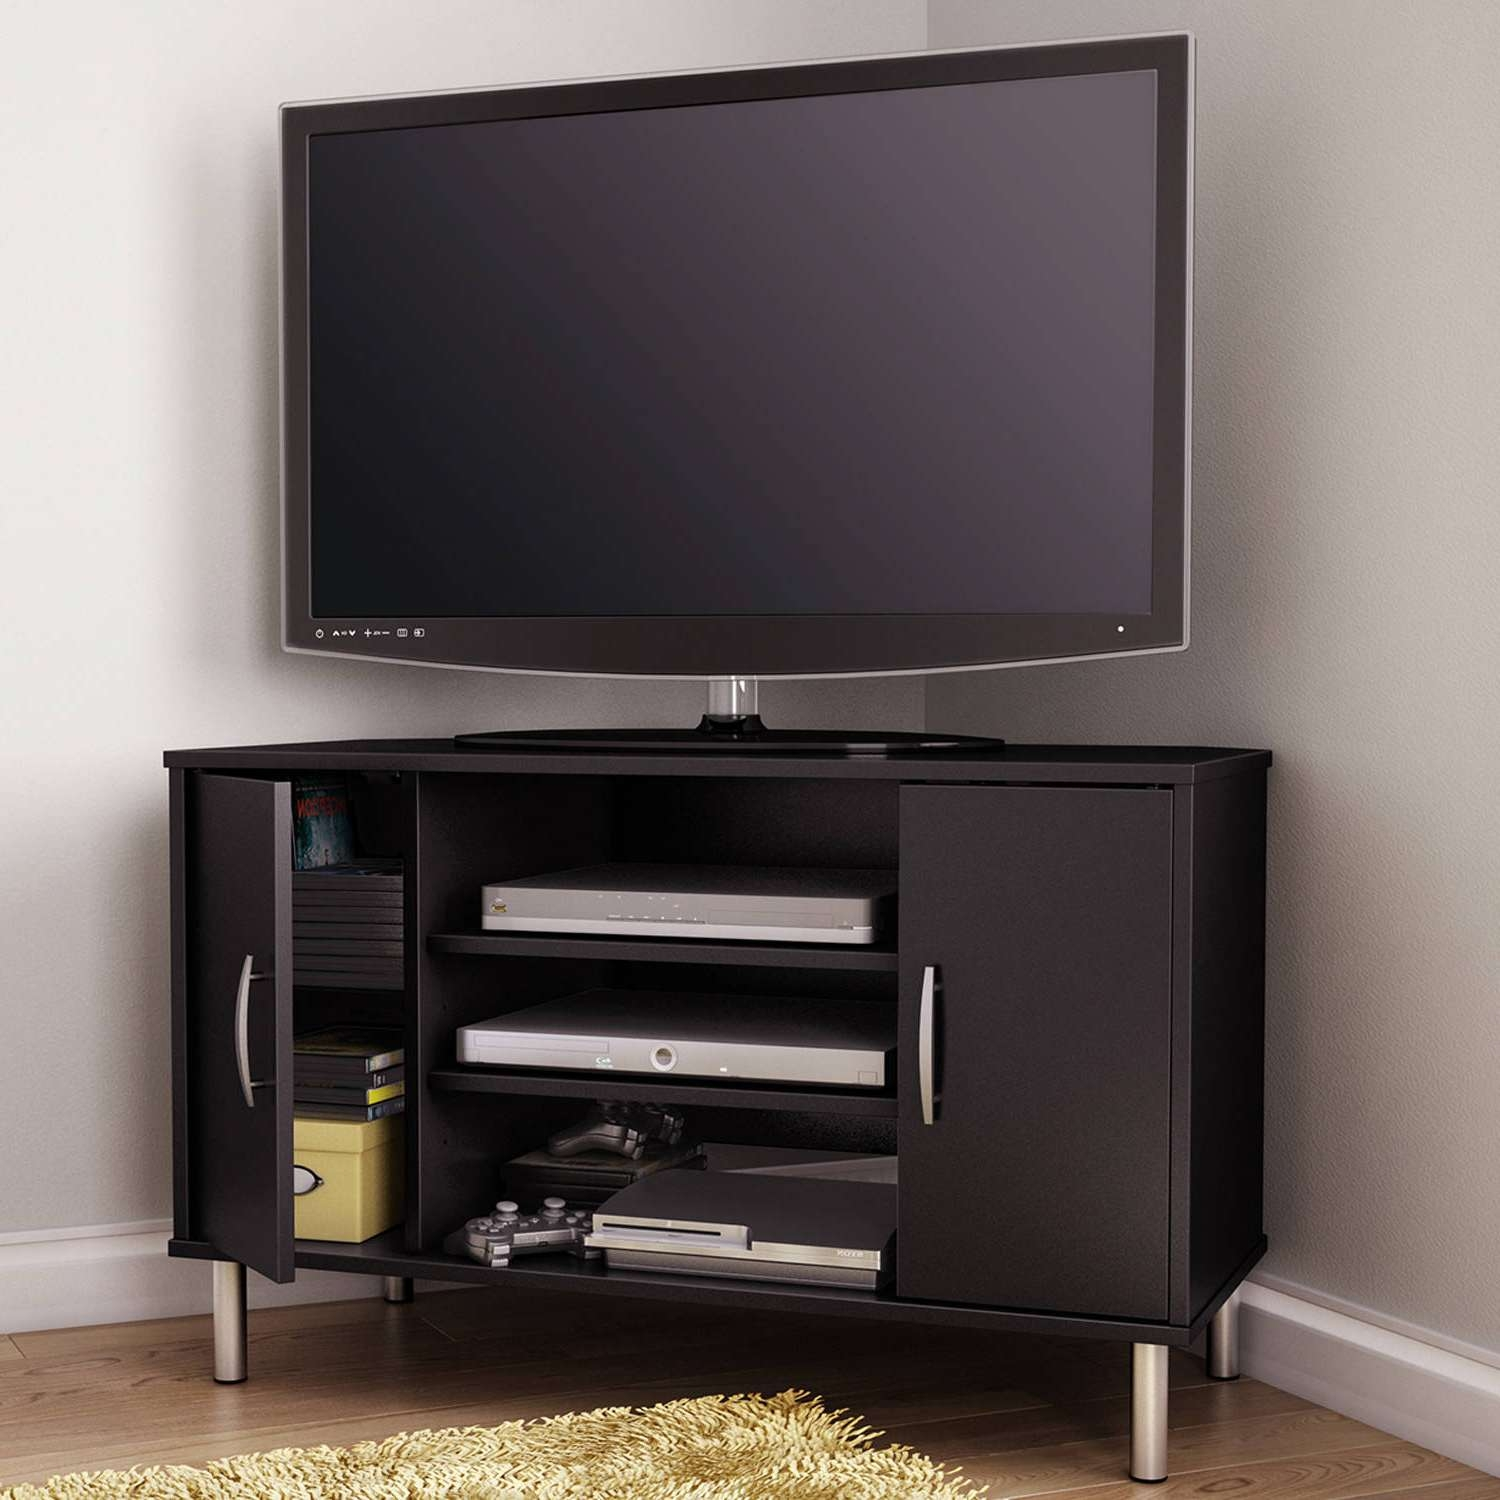 Storage Cabinets Ideas : Corner Tv Stand Designs Choosing The Regarding 24 Inch Led Tv Stands (View 9 of 15)